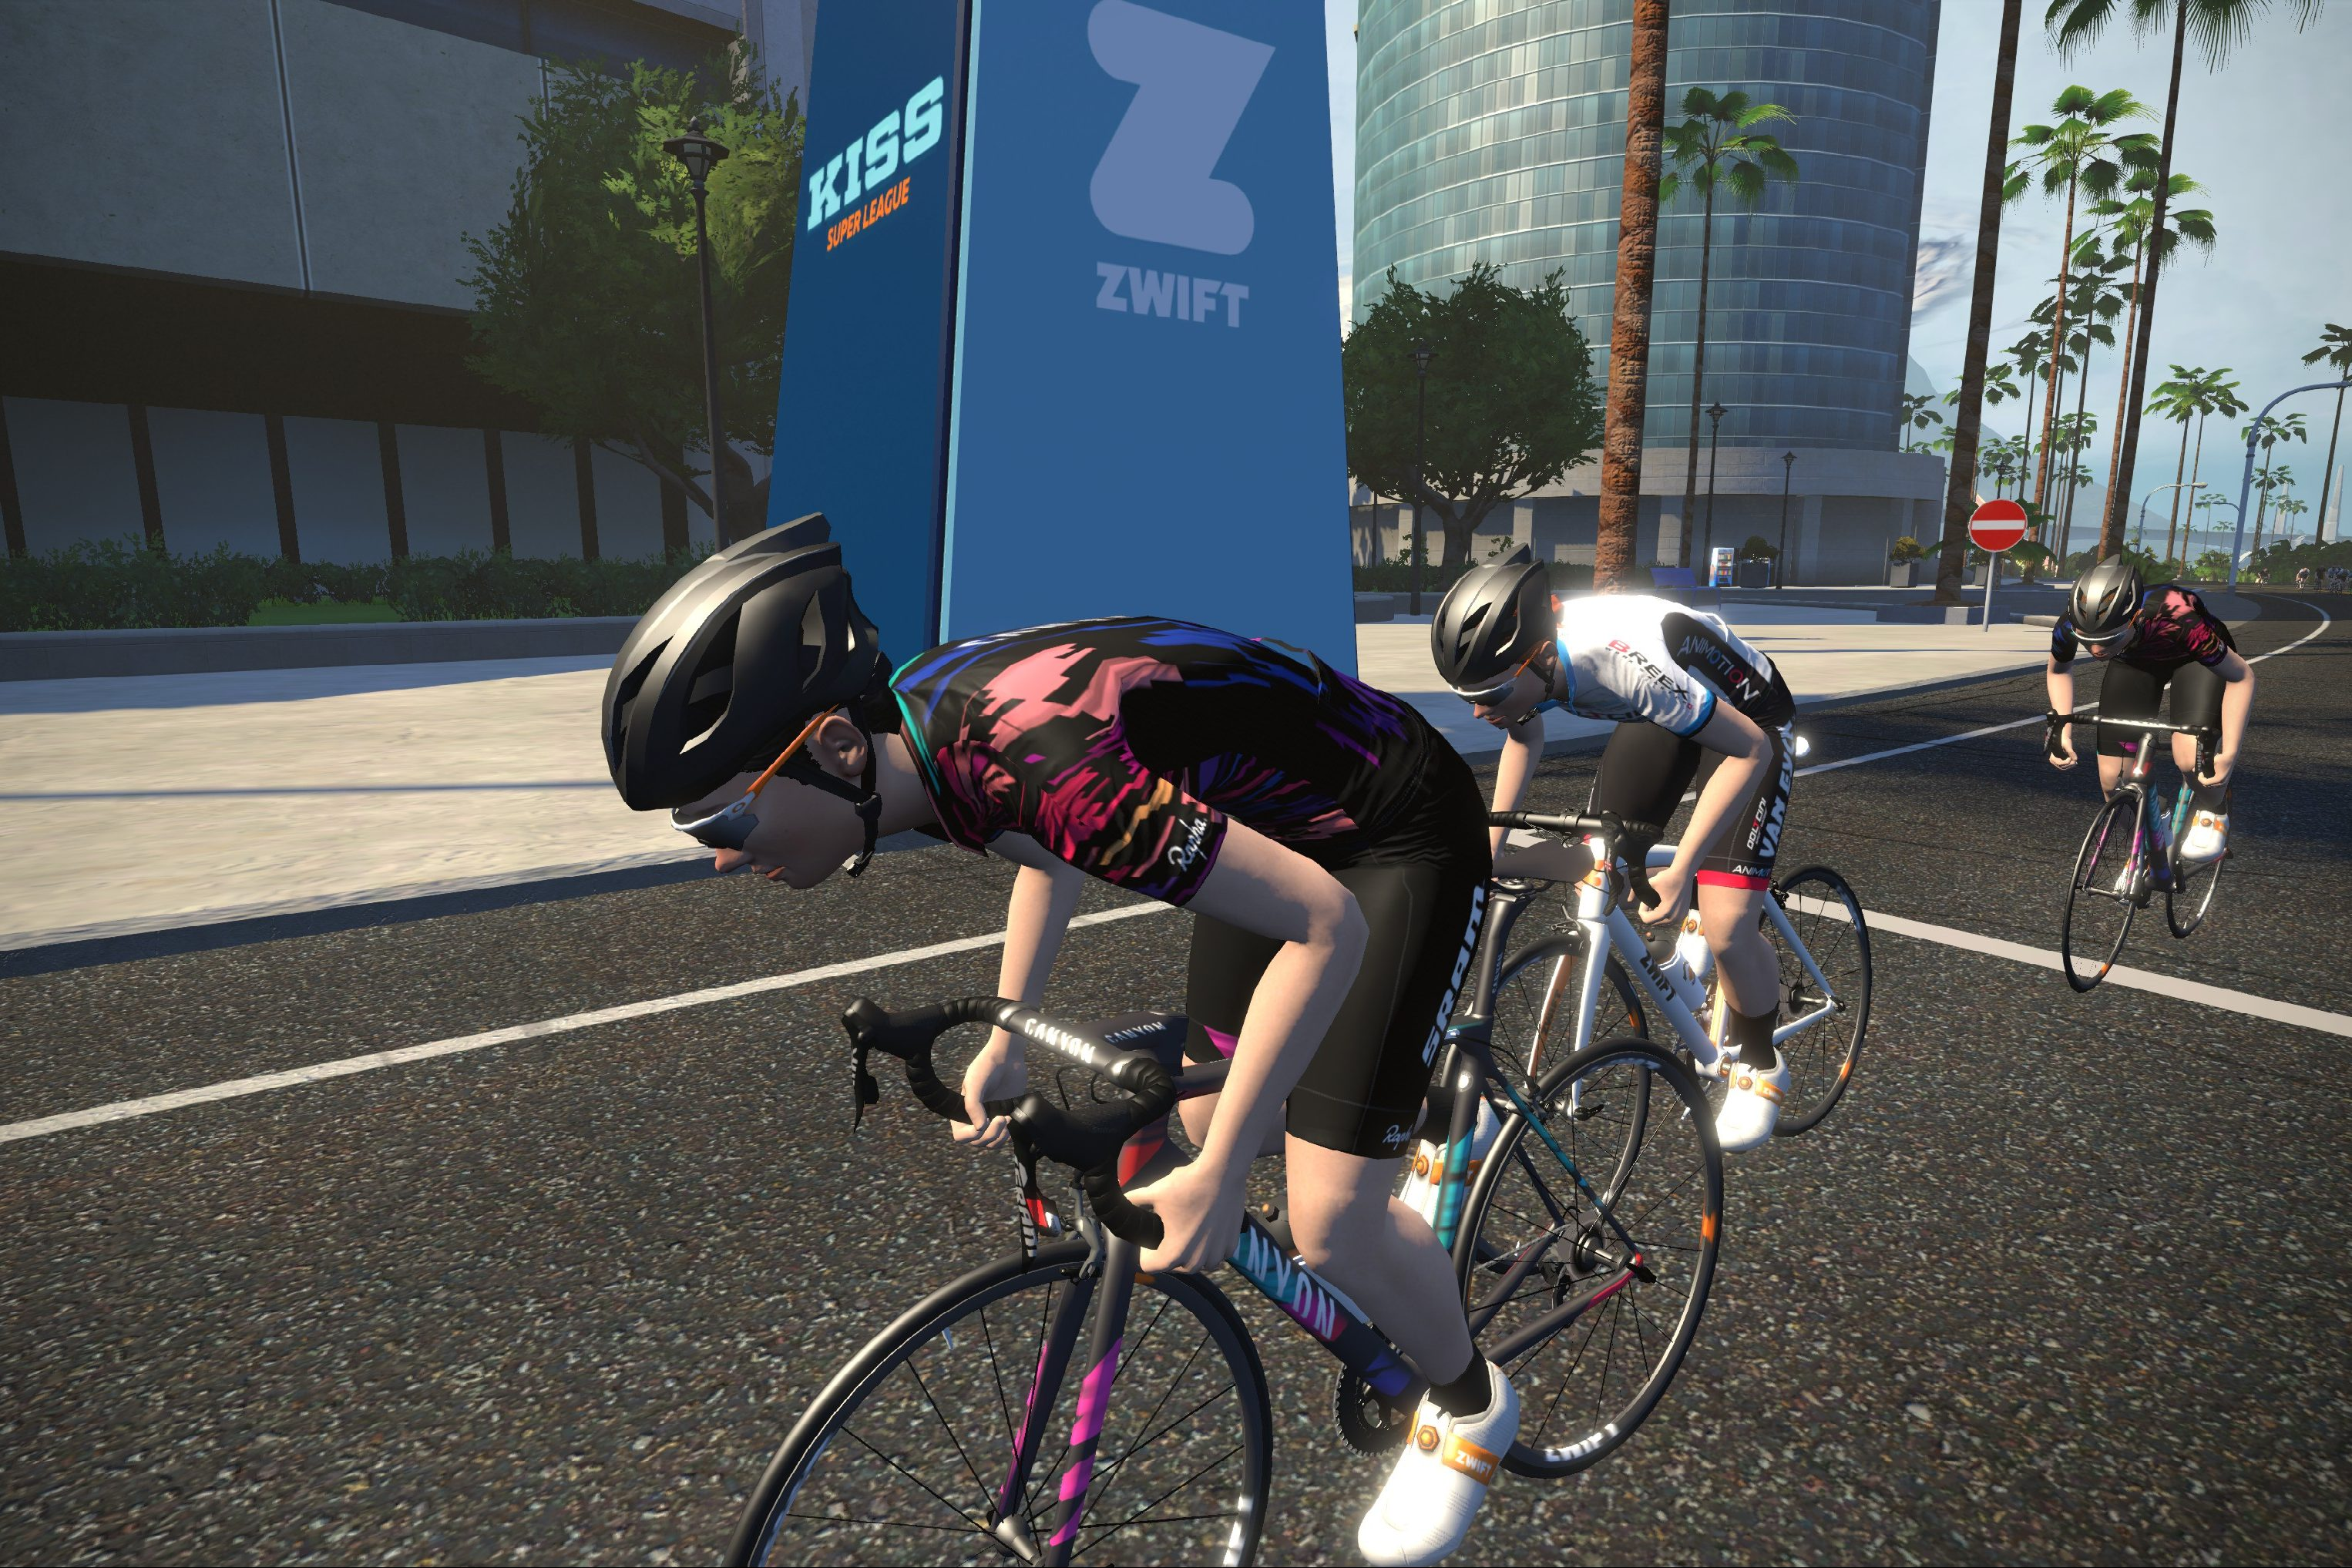 Zwift  Drop Shop  lets users customise avatars and grow bike collections -  Cycling Weekly cab264b01